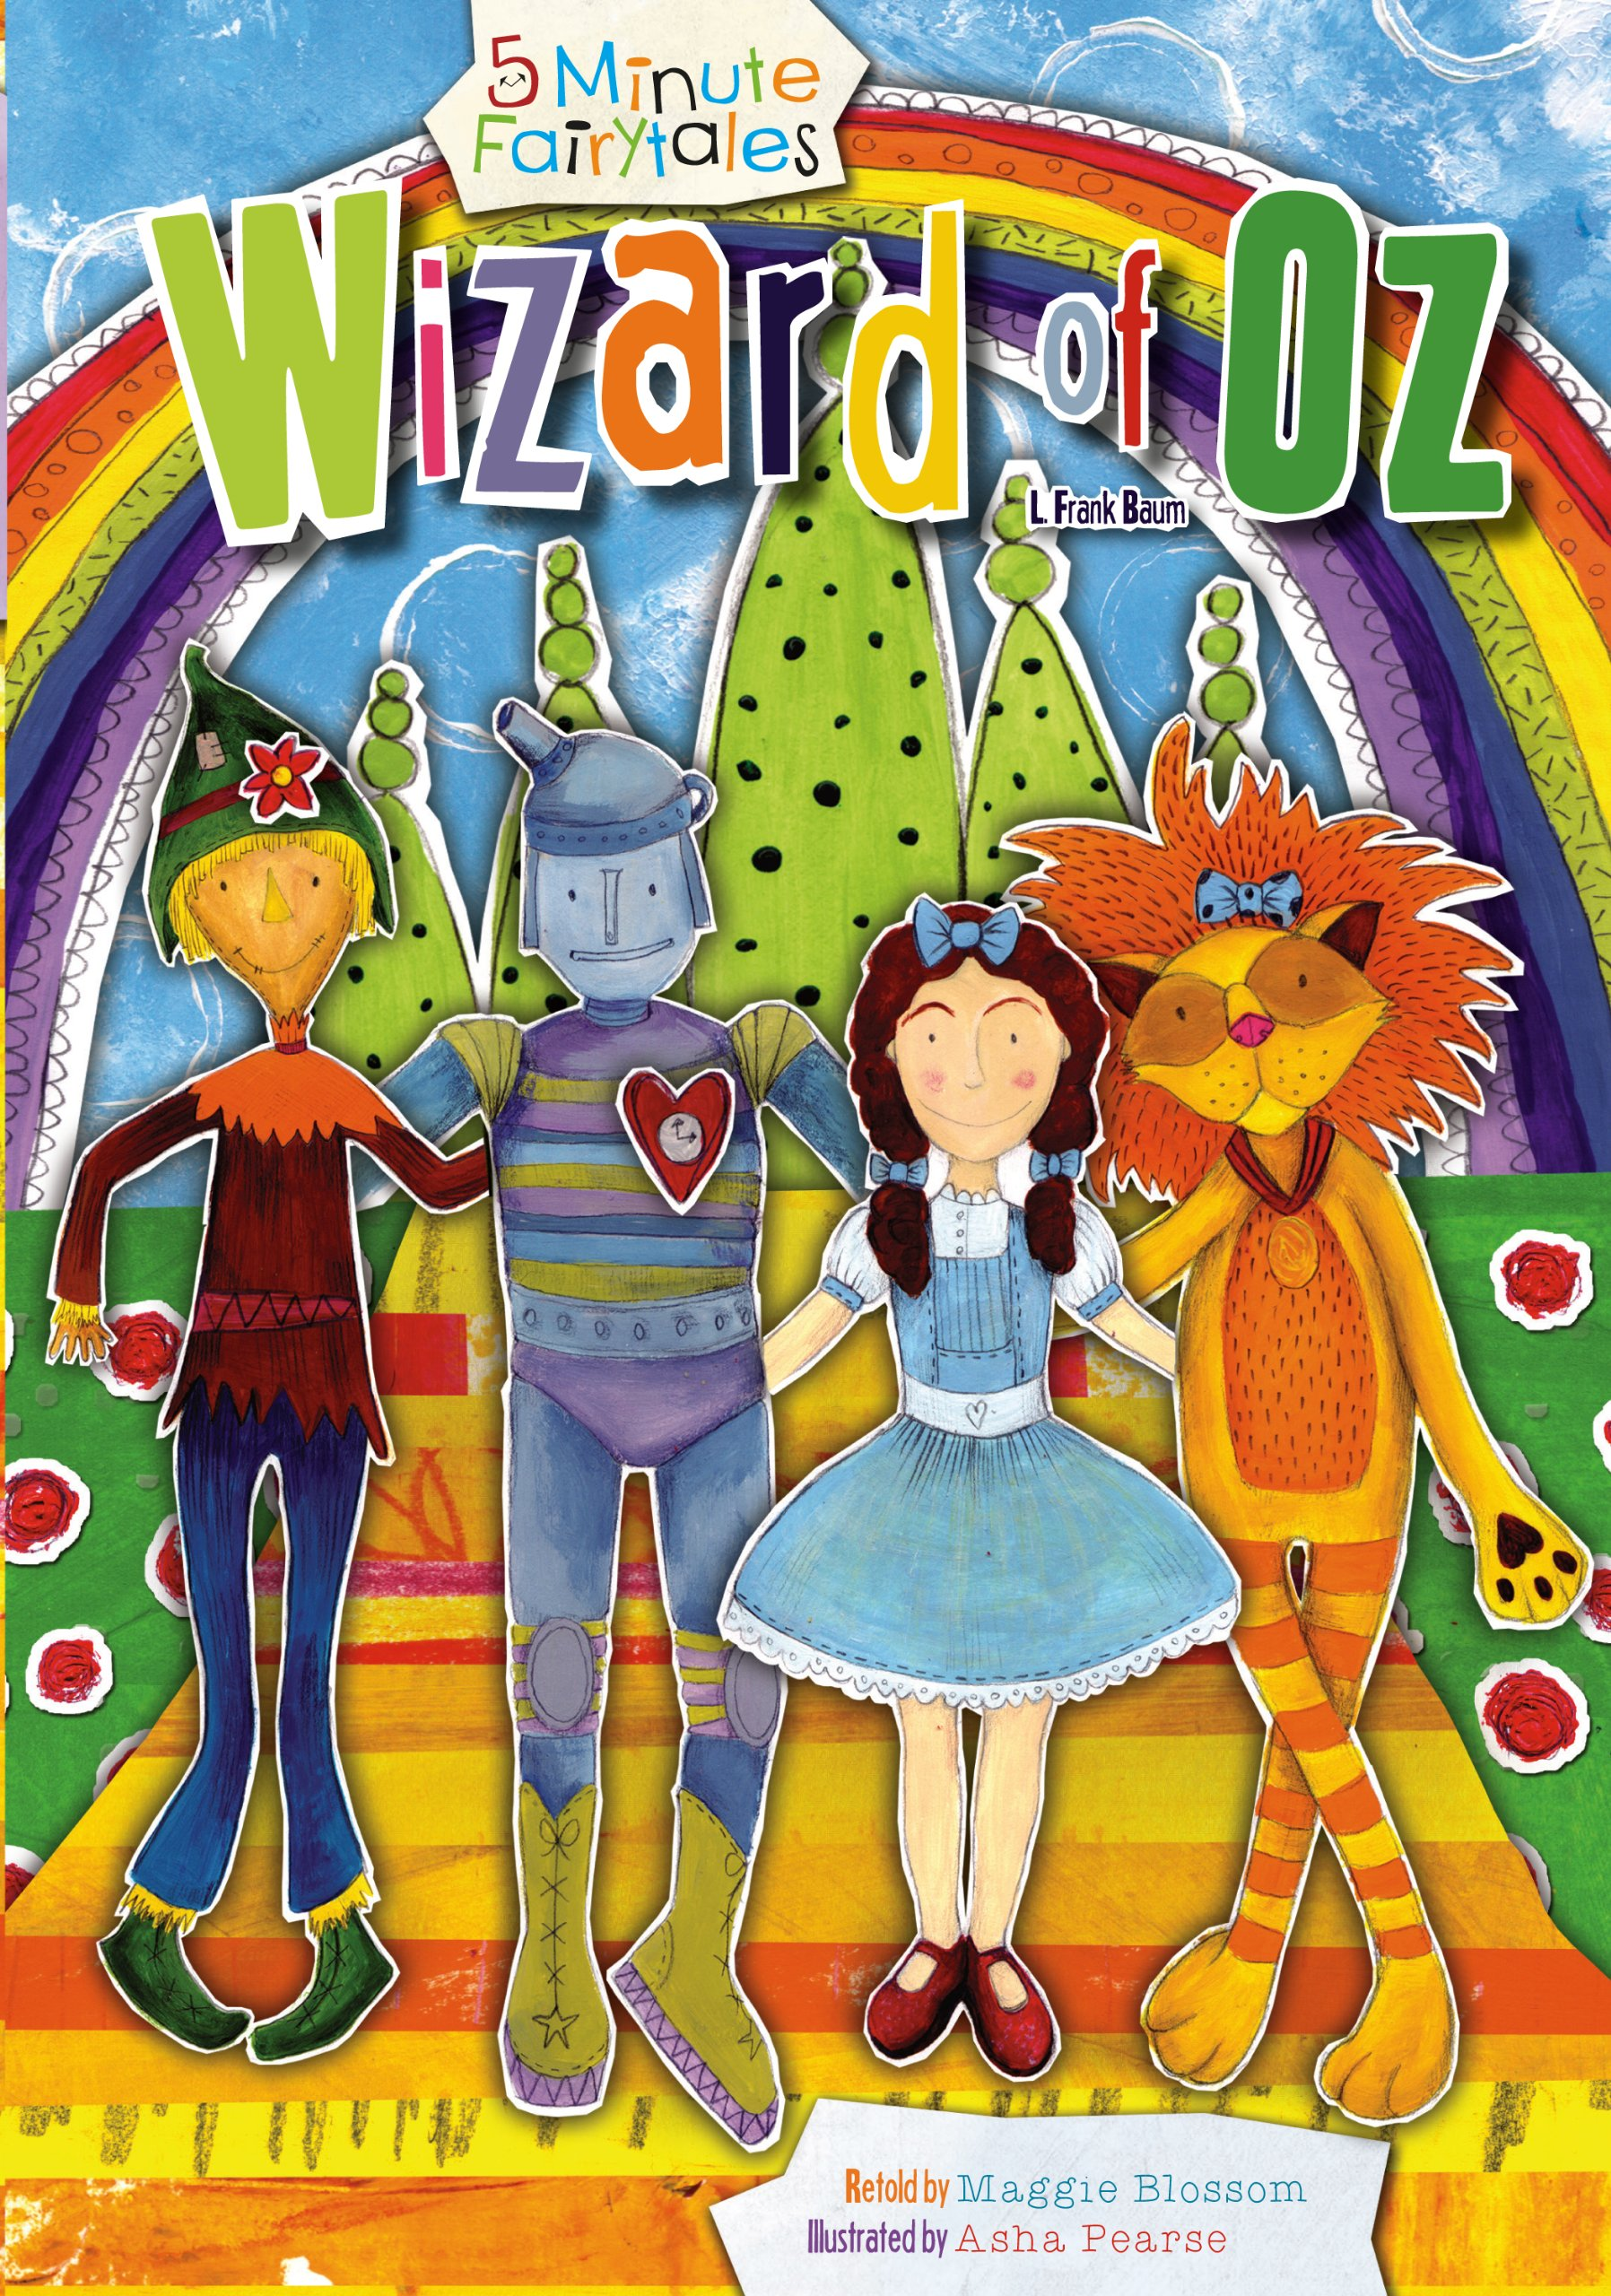 Wizard of oz 5 minute storytime maggie blossom 9781486700097 wizard of oz 5 minute storytime maggie blossom 9781486700097 amazon books fandeluxe Choice Image